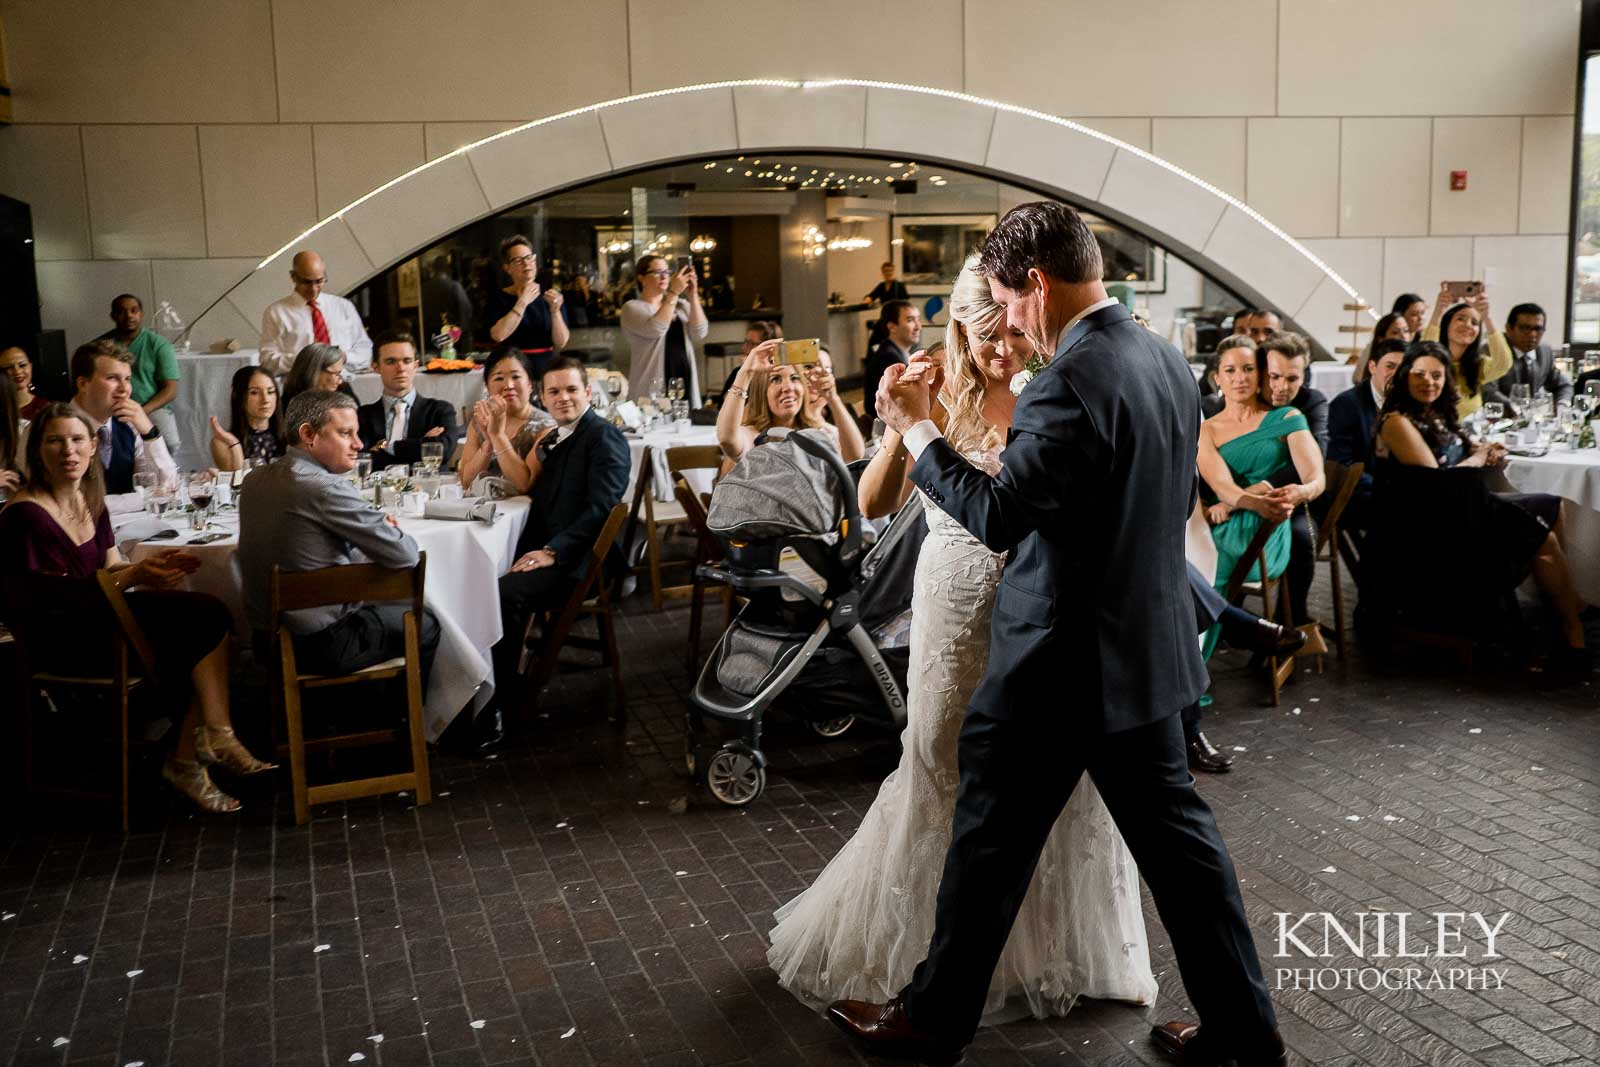 64-Max-of-Eastman-Wedding-and-Reception-Rochester-NY-Kniley-Photography.jpg